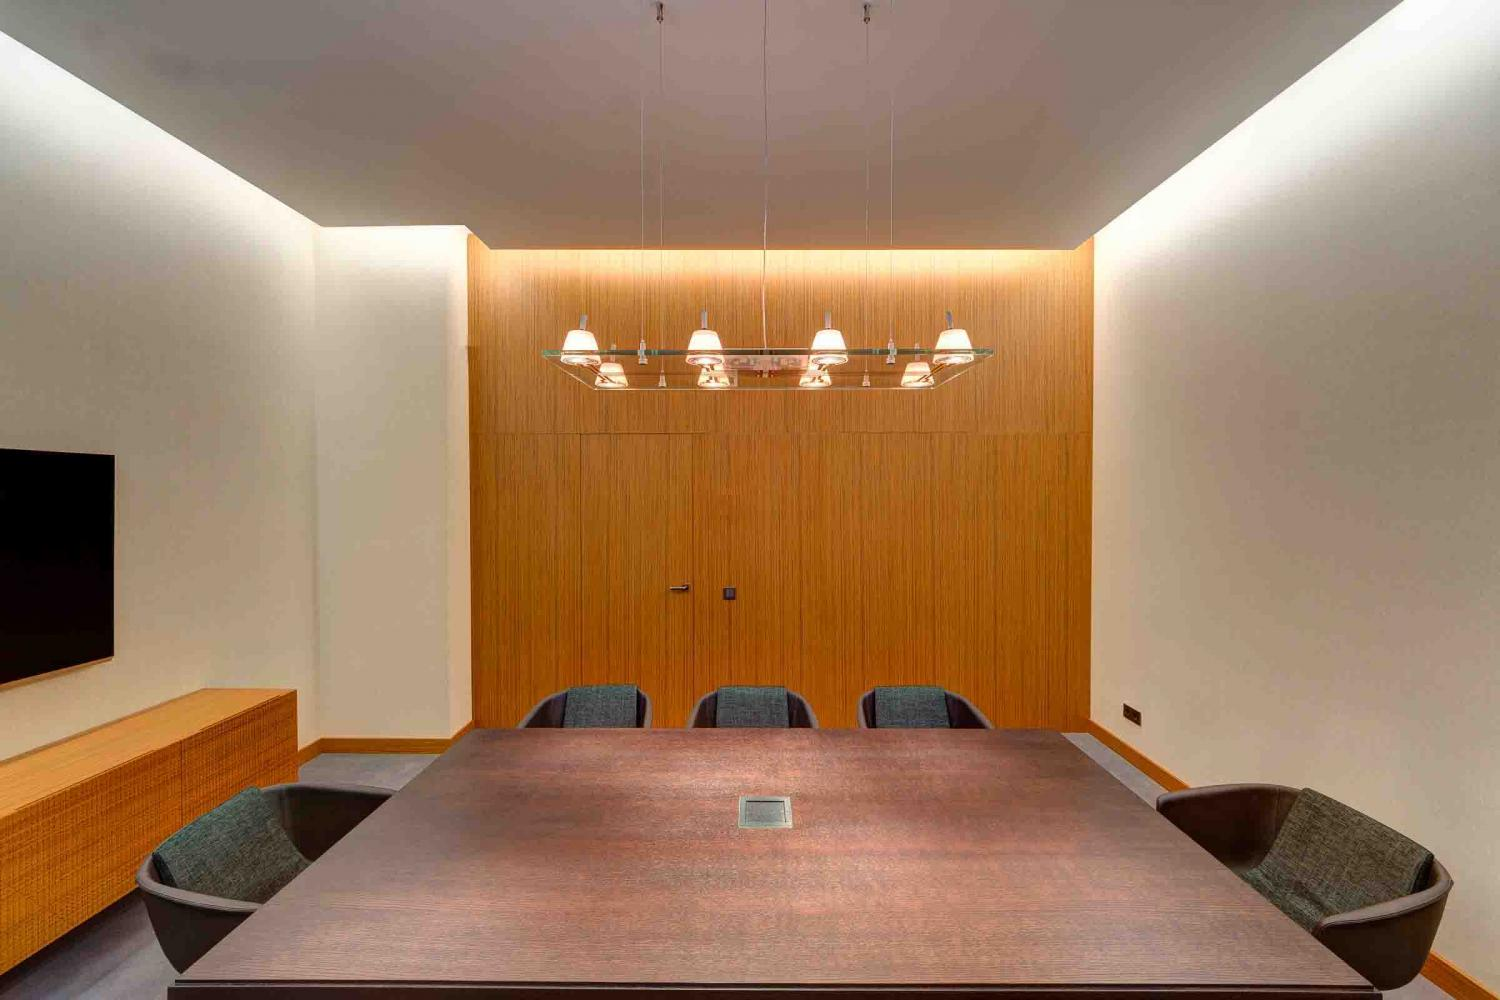 the laurameroni made in italy luxury wall panels in teak wood can decorate office and public spaces